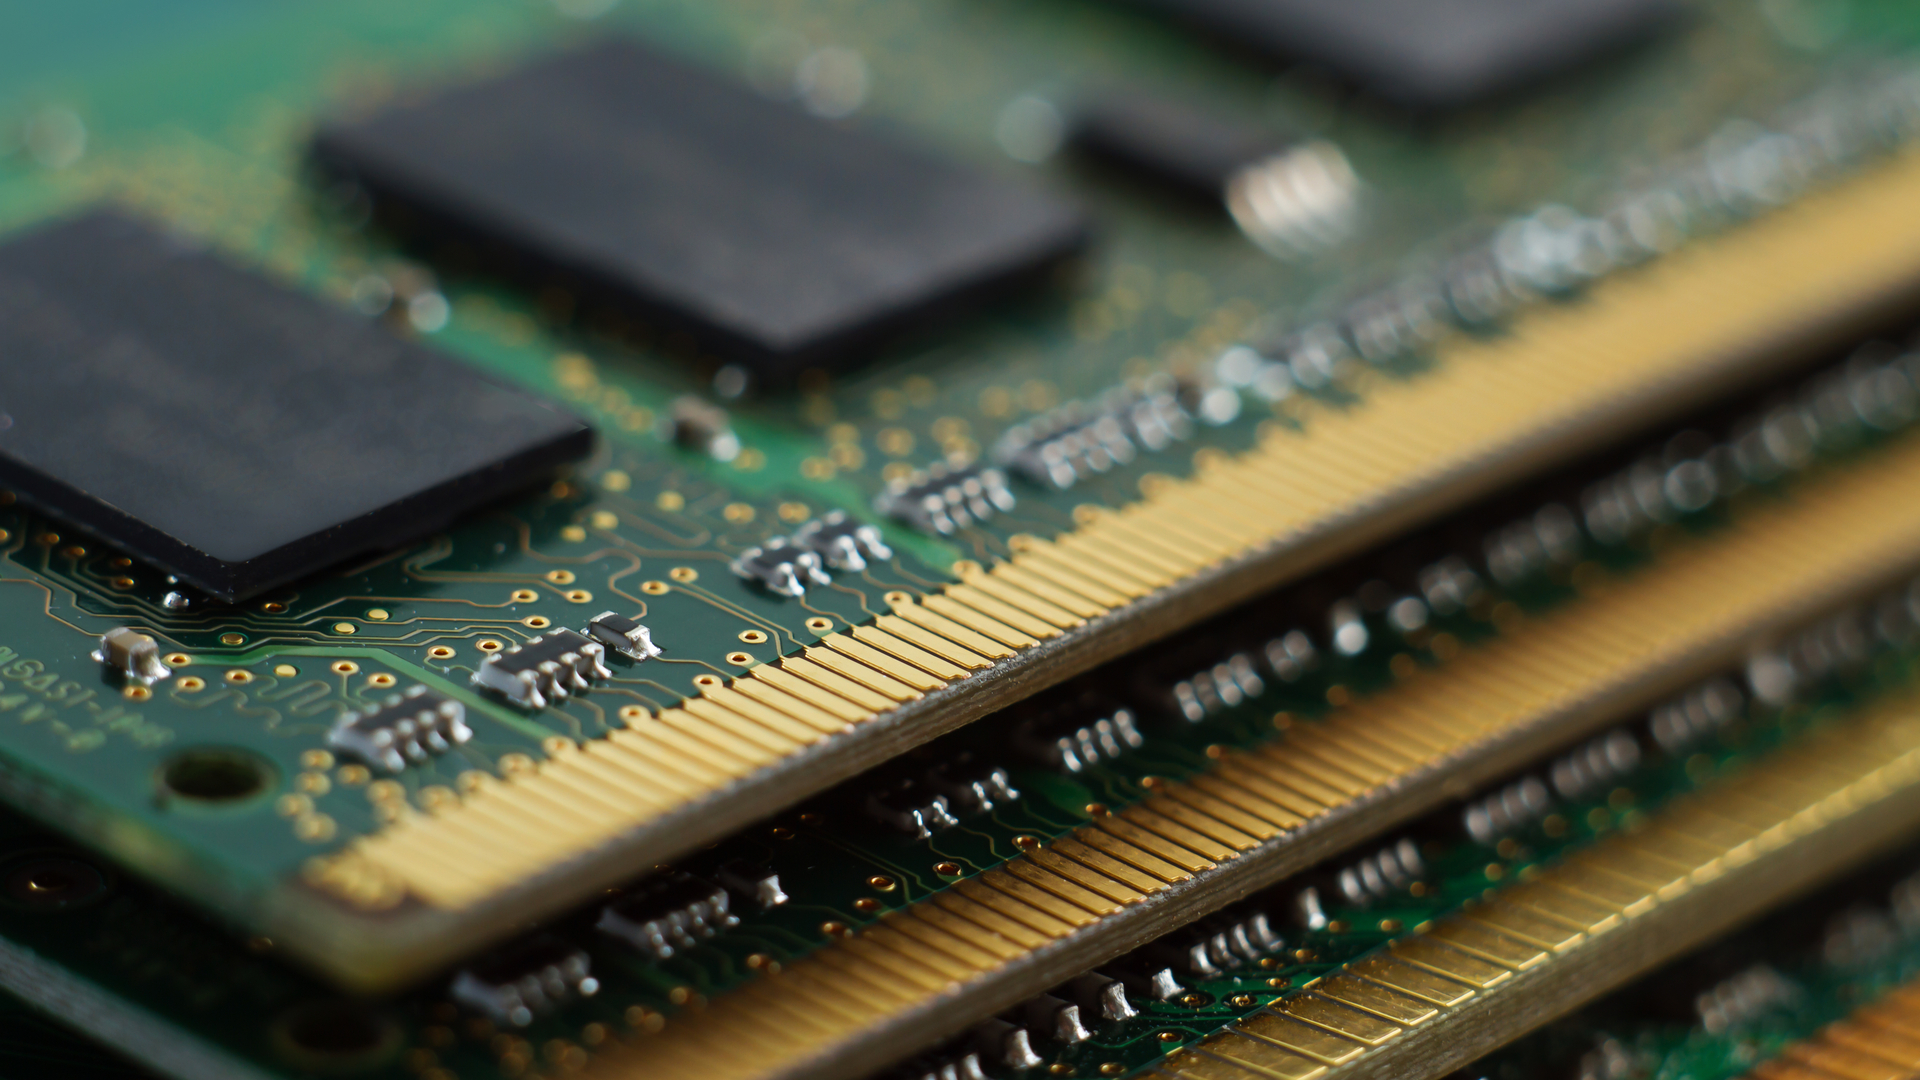 How To Install Ram It S Not As Simple As Downloading More Ram Techradar